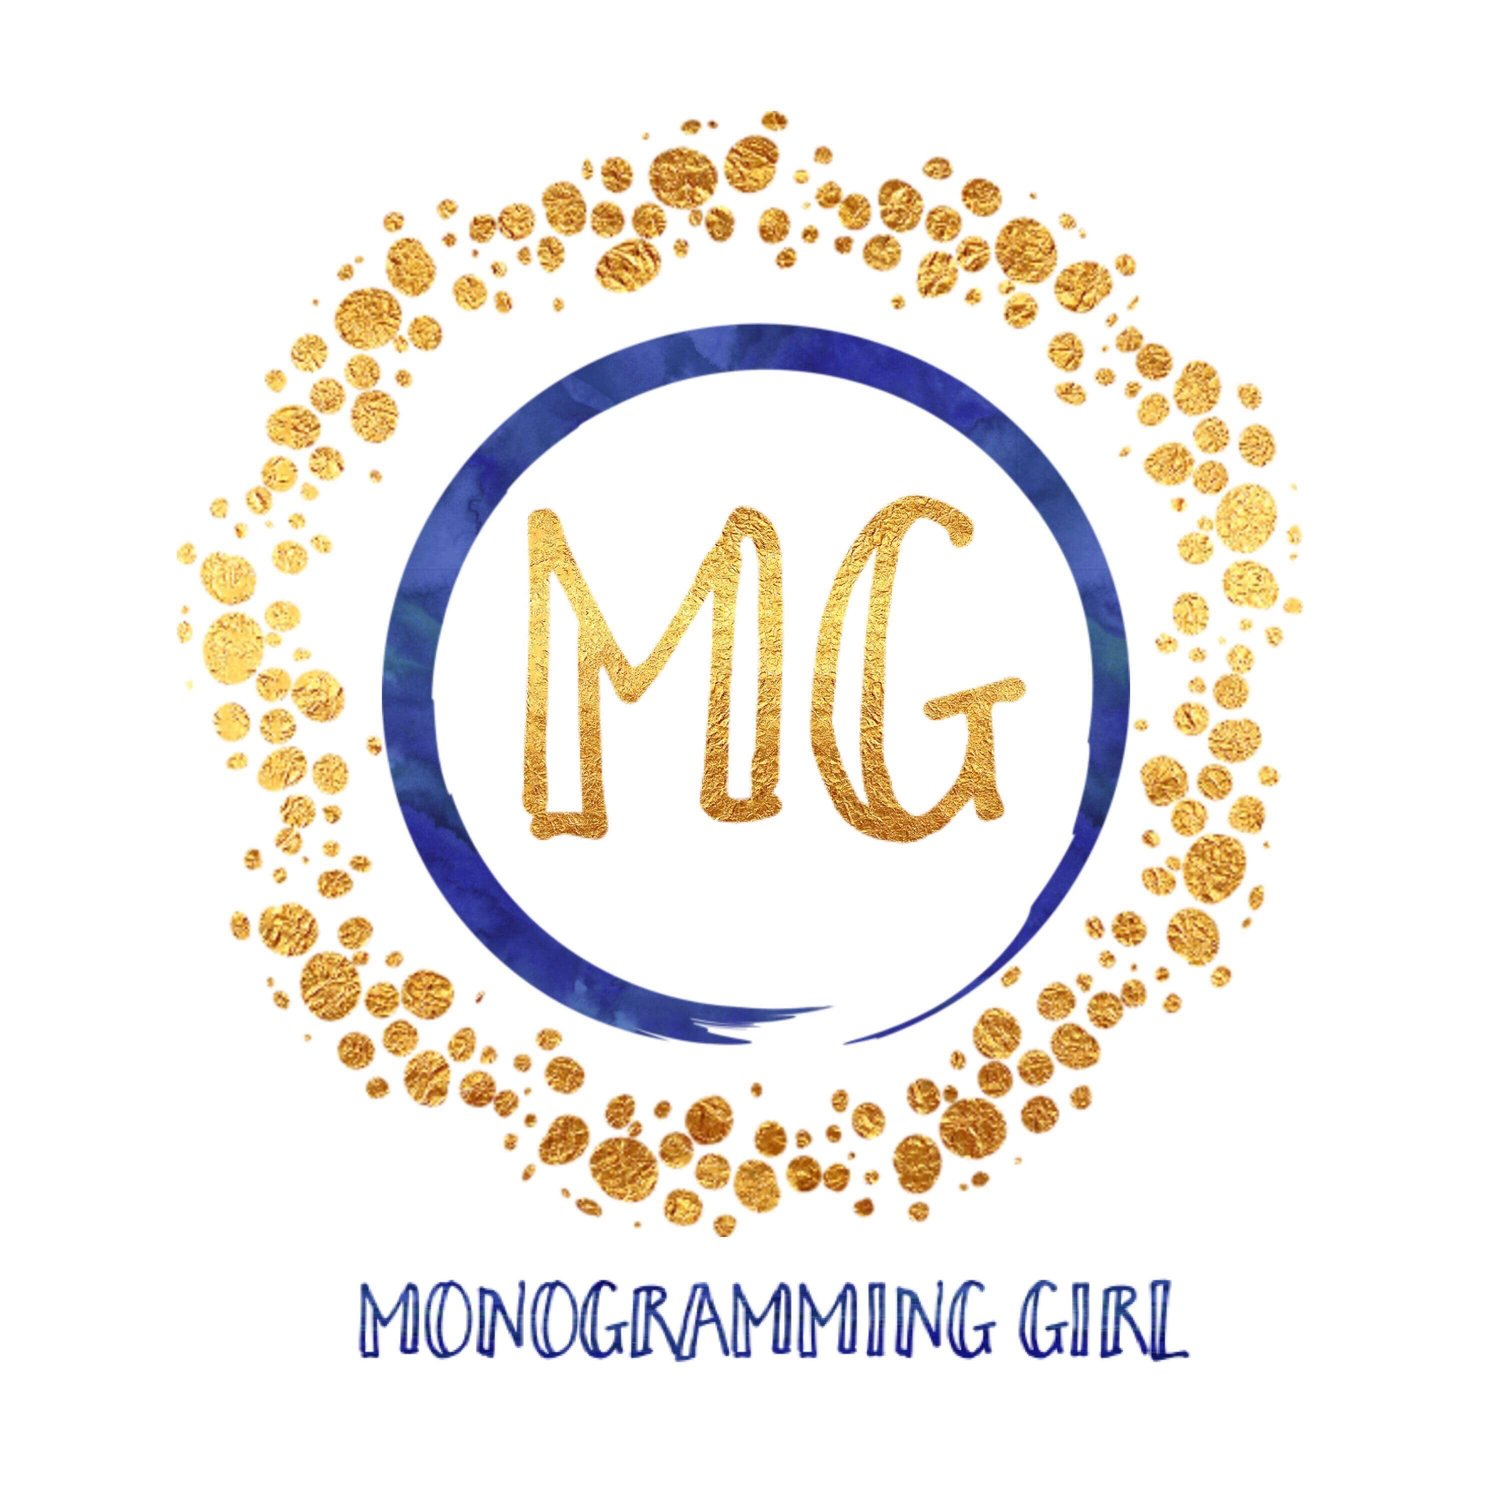 Mongramming Girl